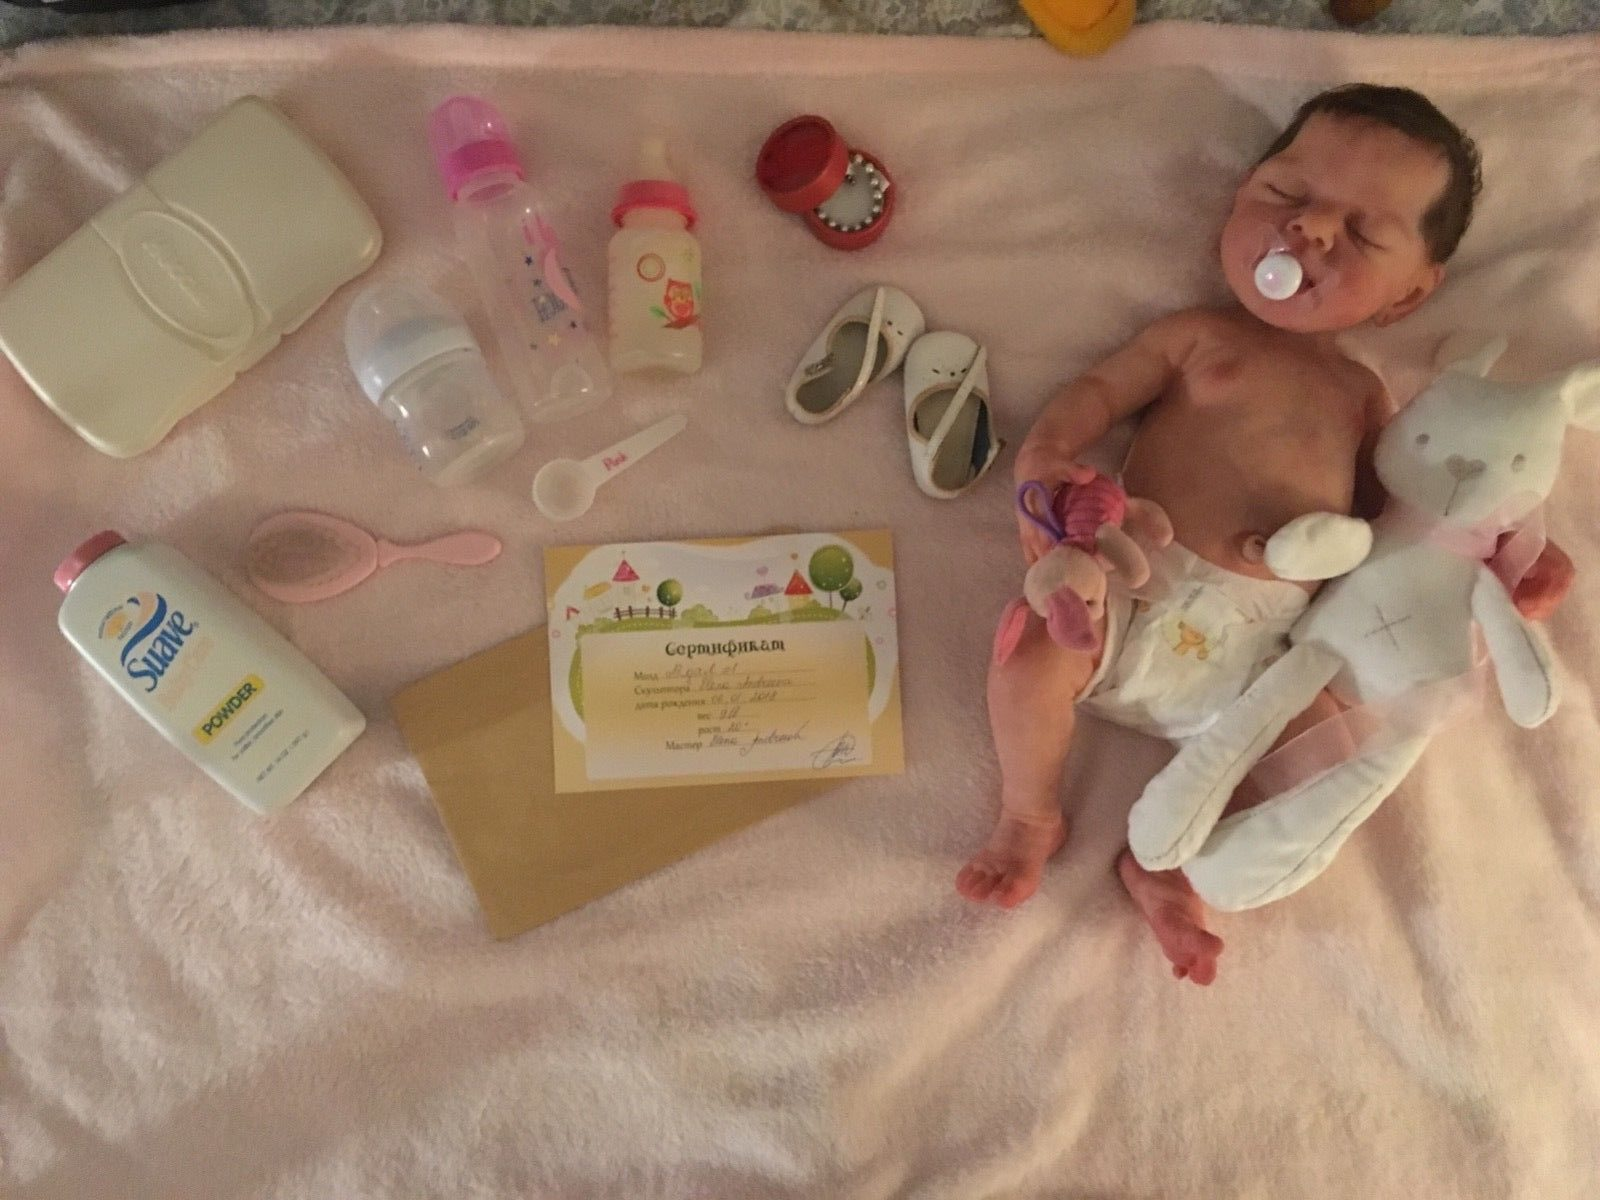 Full Bodied Silicone Baby With Drink And Wet System For